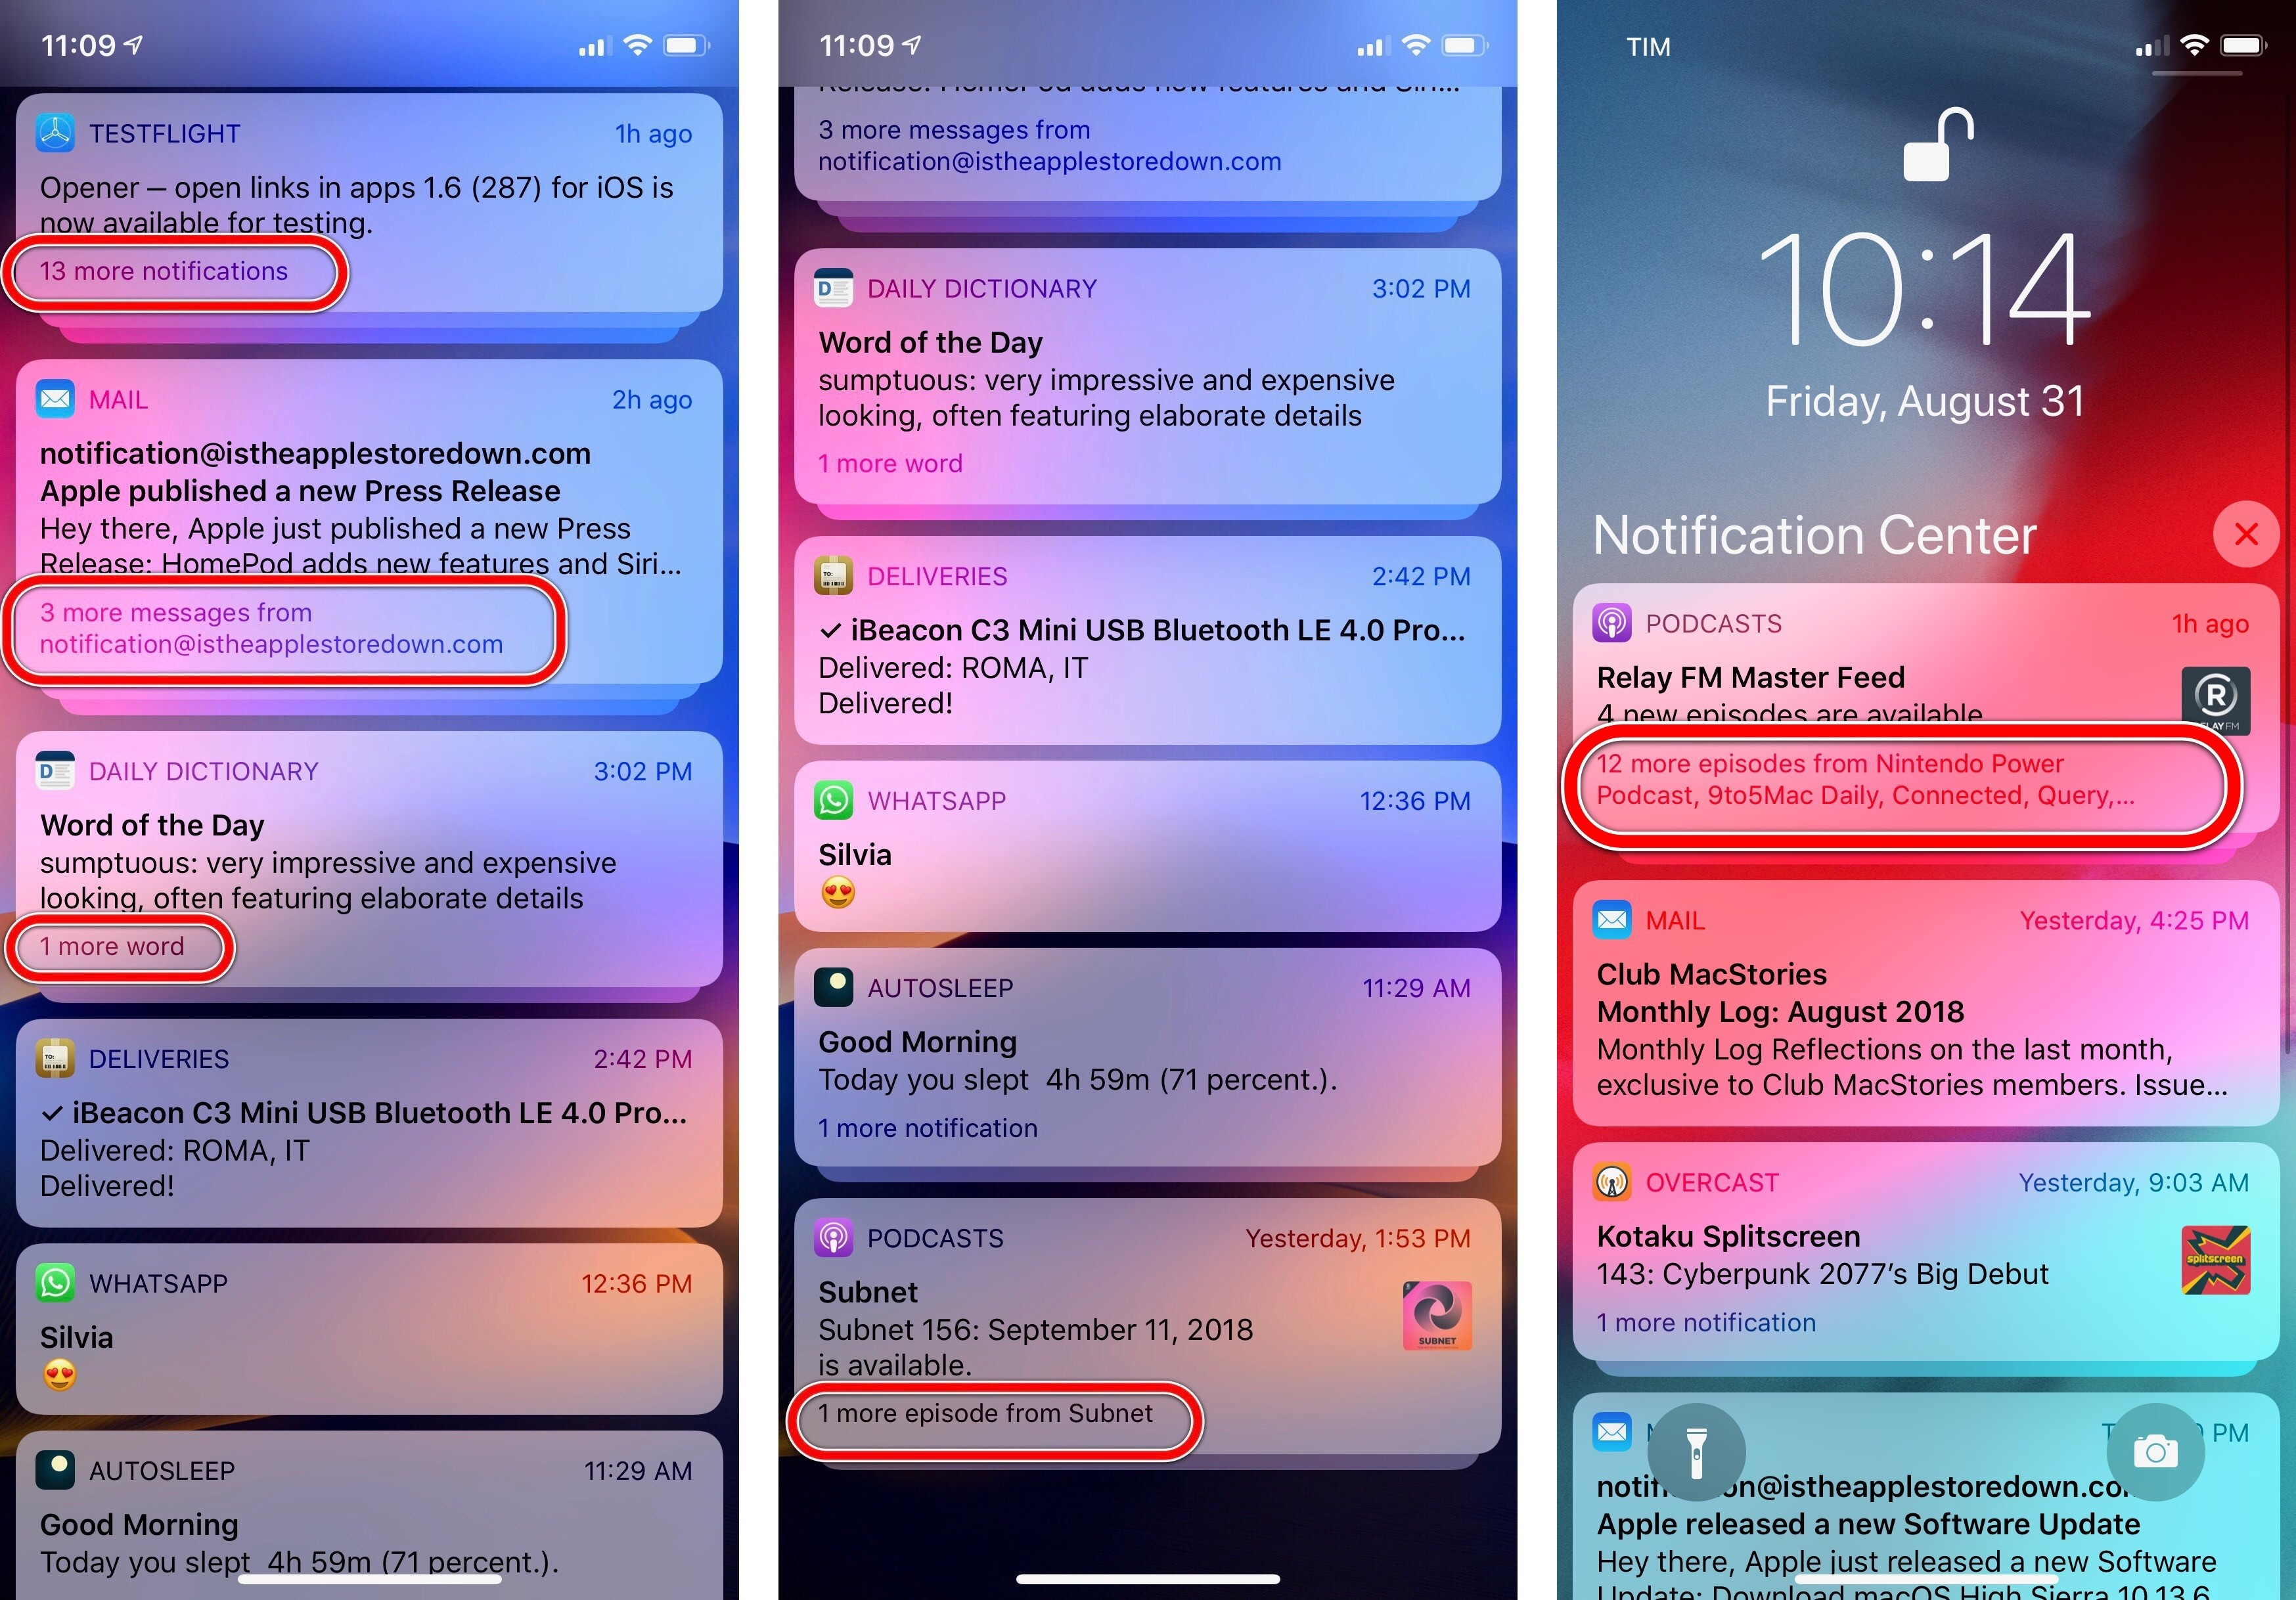 Different kinds of summary messages for notifications.